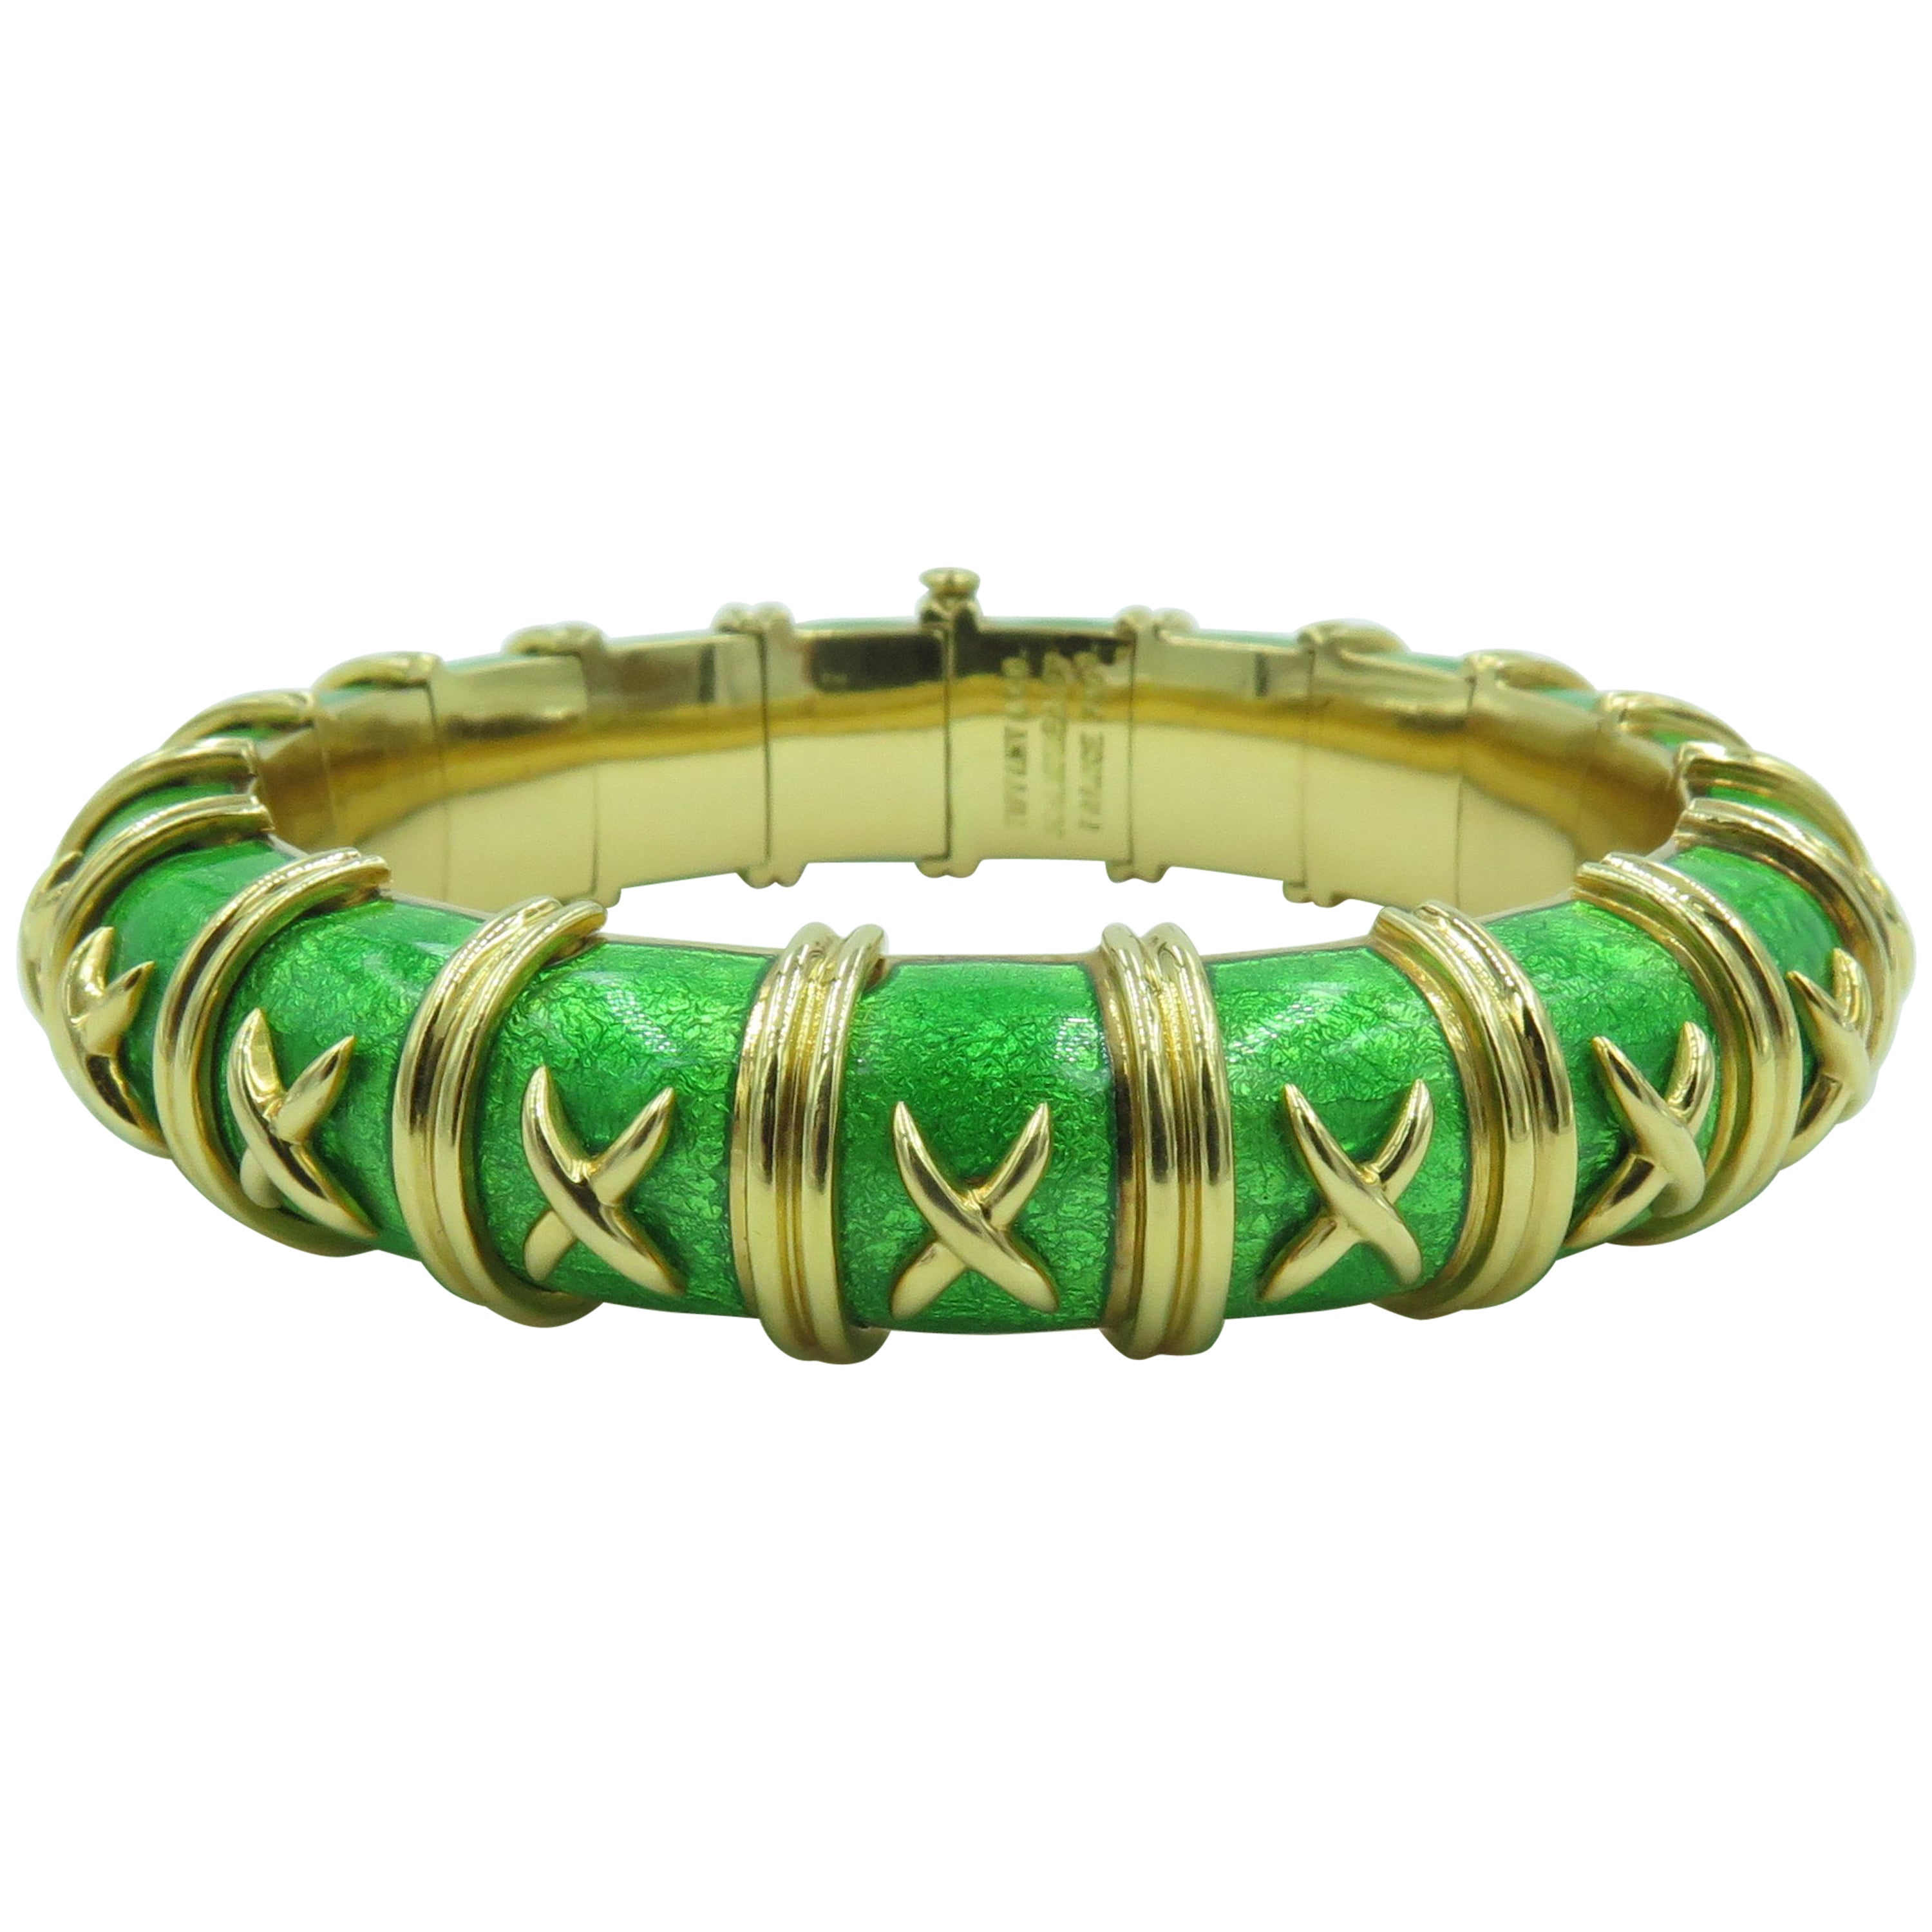 048400fad Tiffany and Co. Schlumberger Enamel and Gold Bracelet at 1stdibs